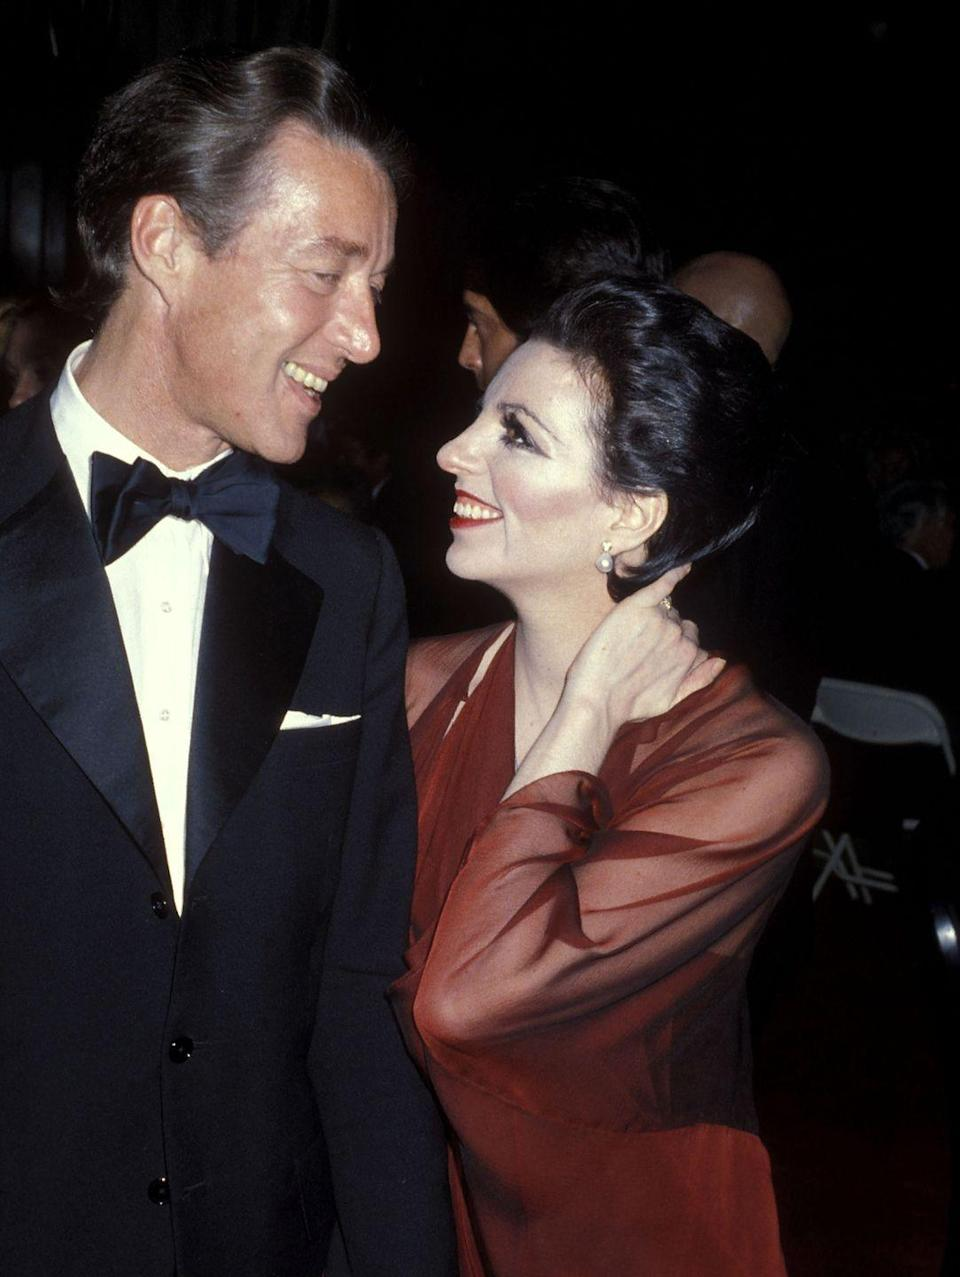 <p>Here, the fashion designer and Liza Minnelli are shown at the Martha Graham Dance Company Benefit Gala at the Metropolitan Opera House in Lincoln Center.</p>